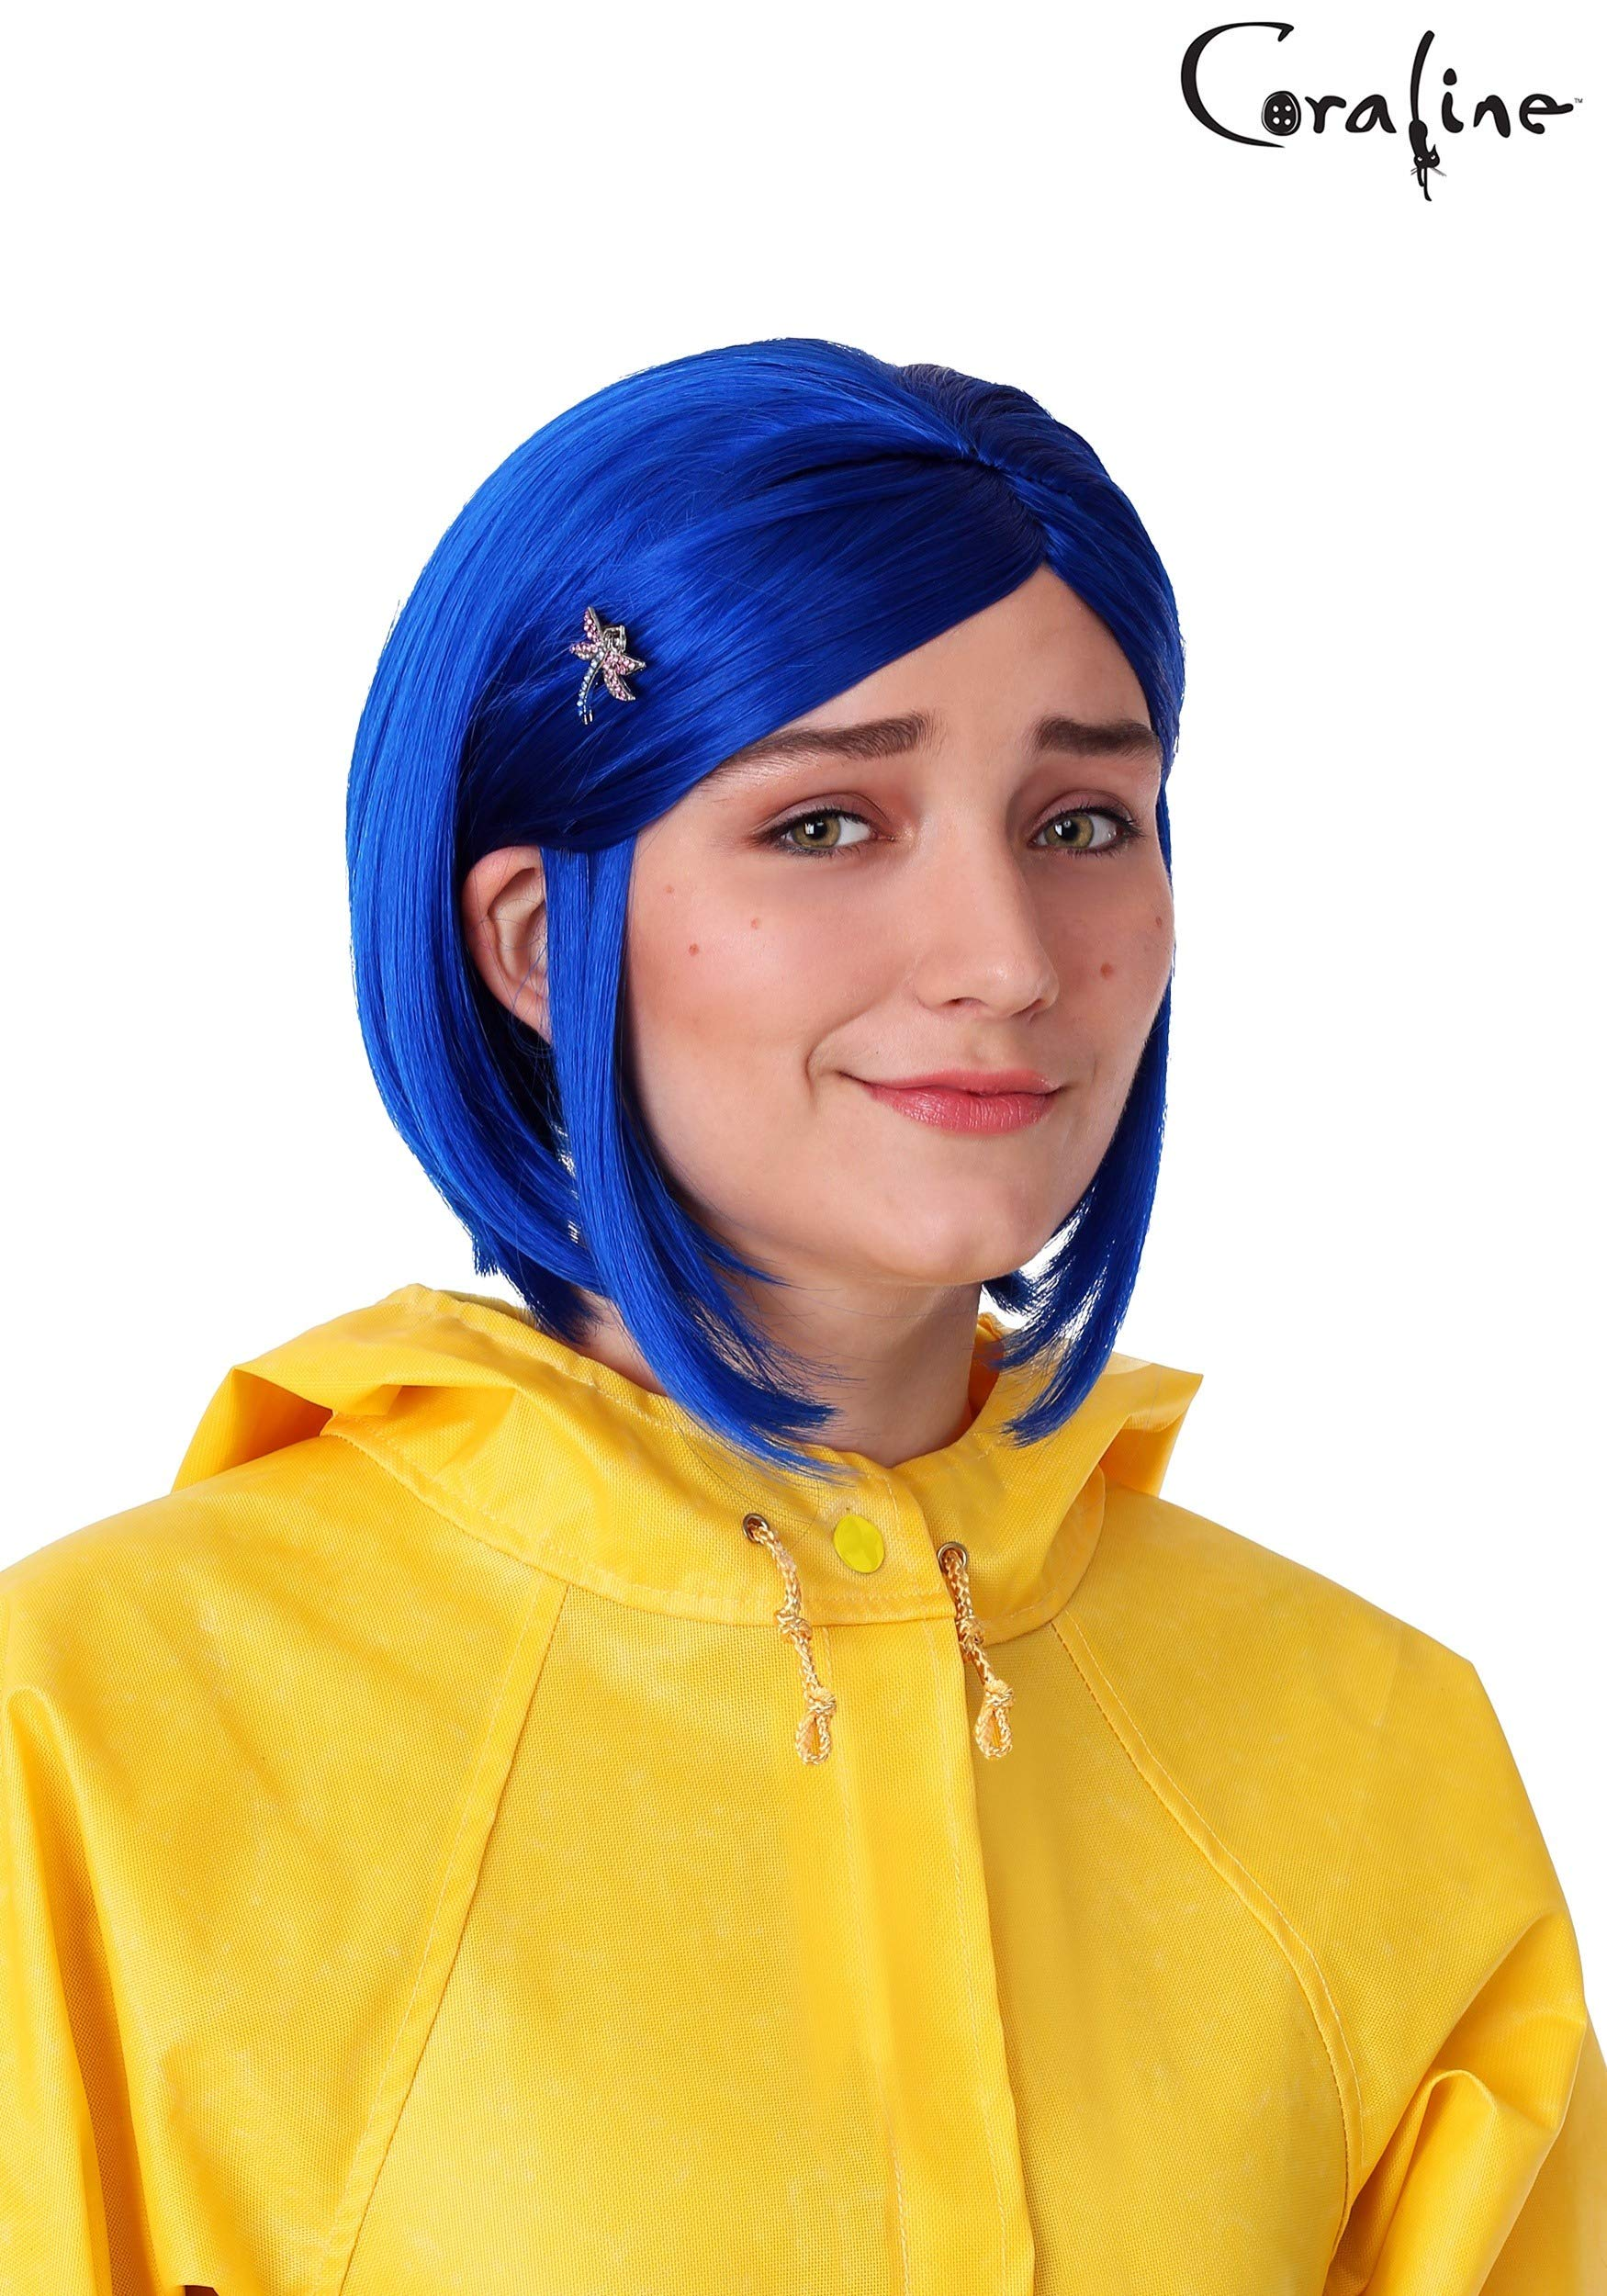 Fun Costumes Adult Coraline Wig Standard Buy Online In Grenada At Desertcart